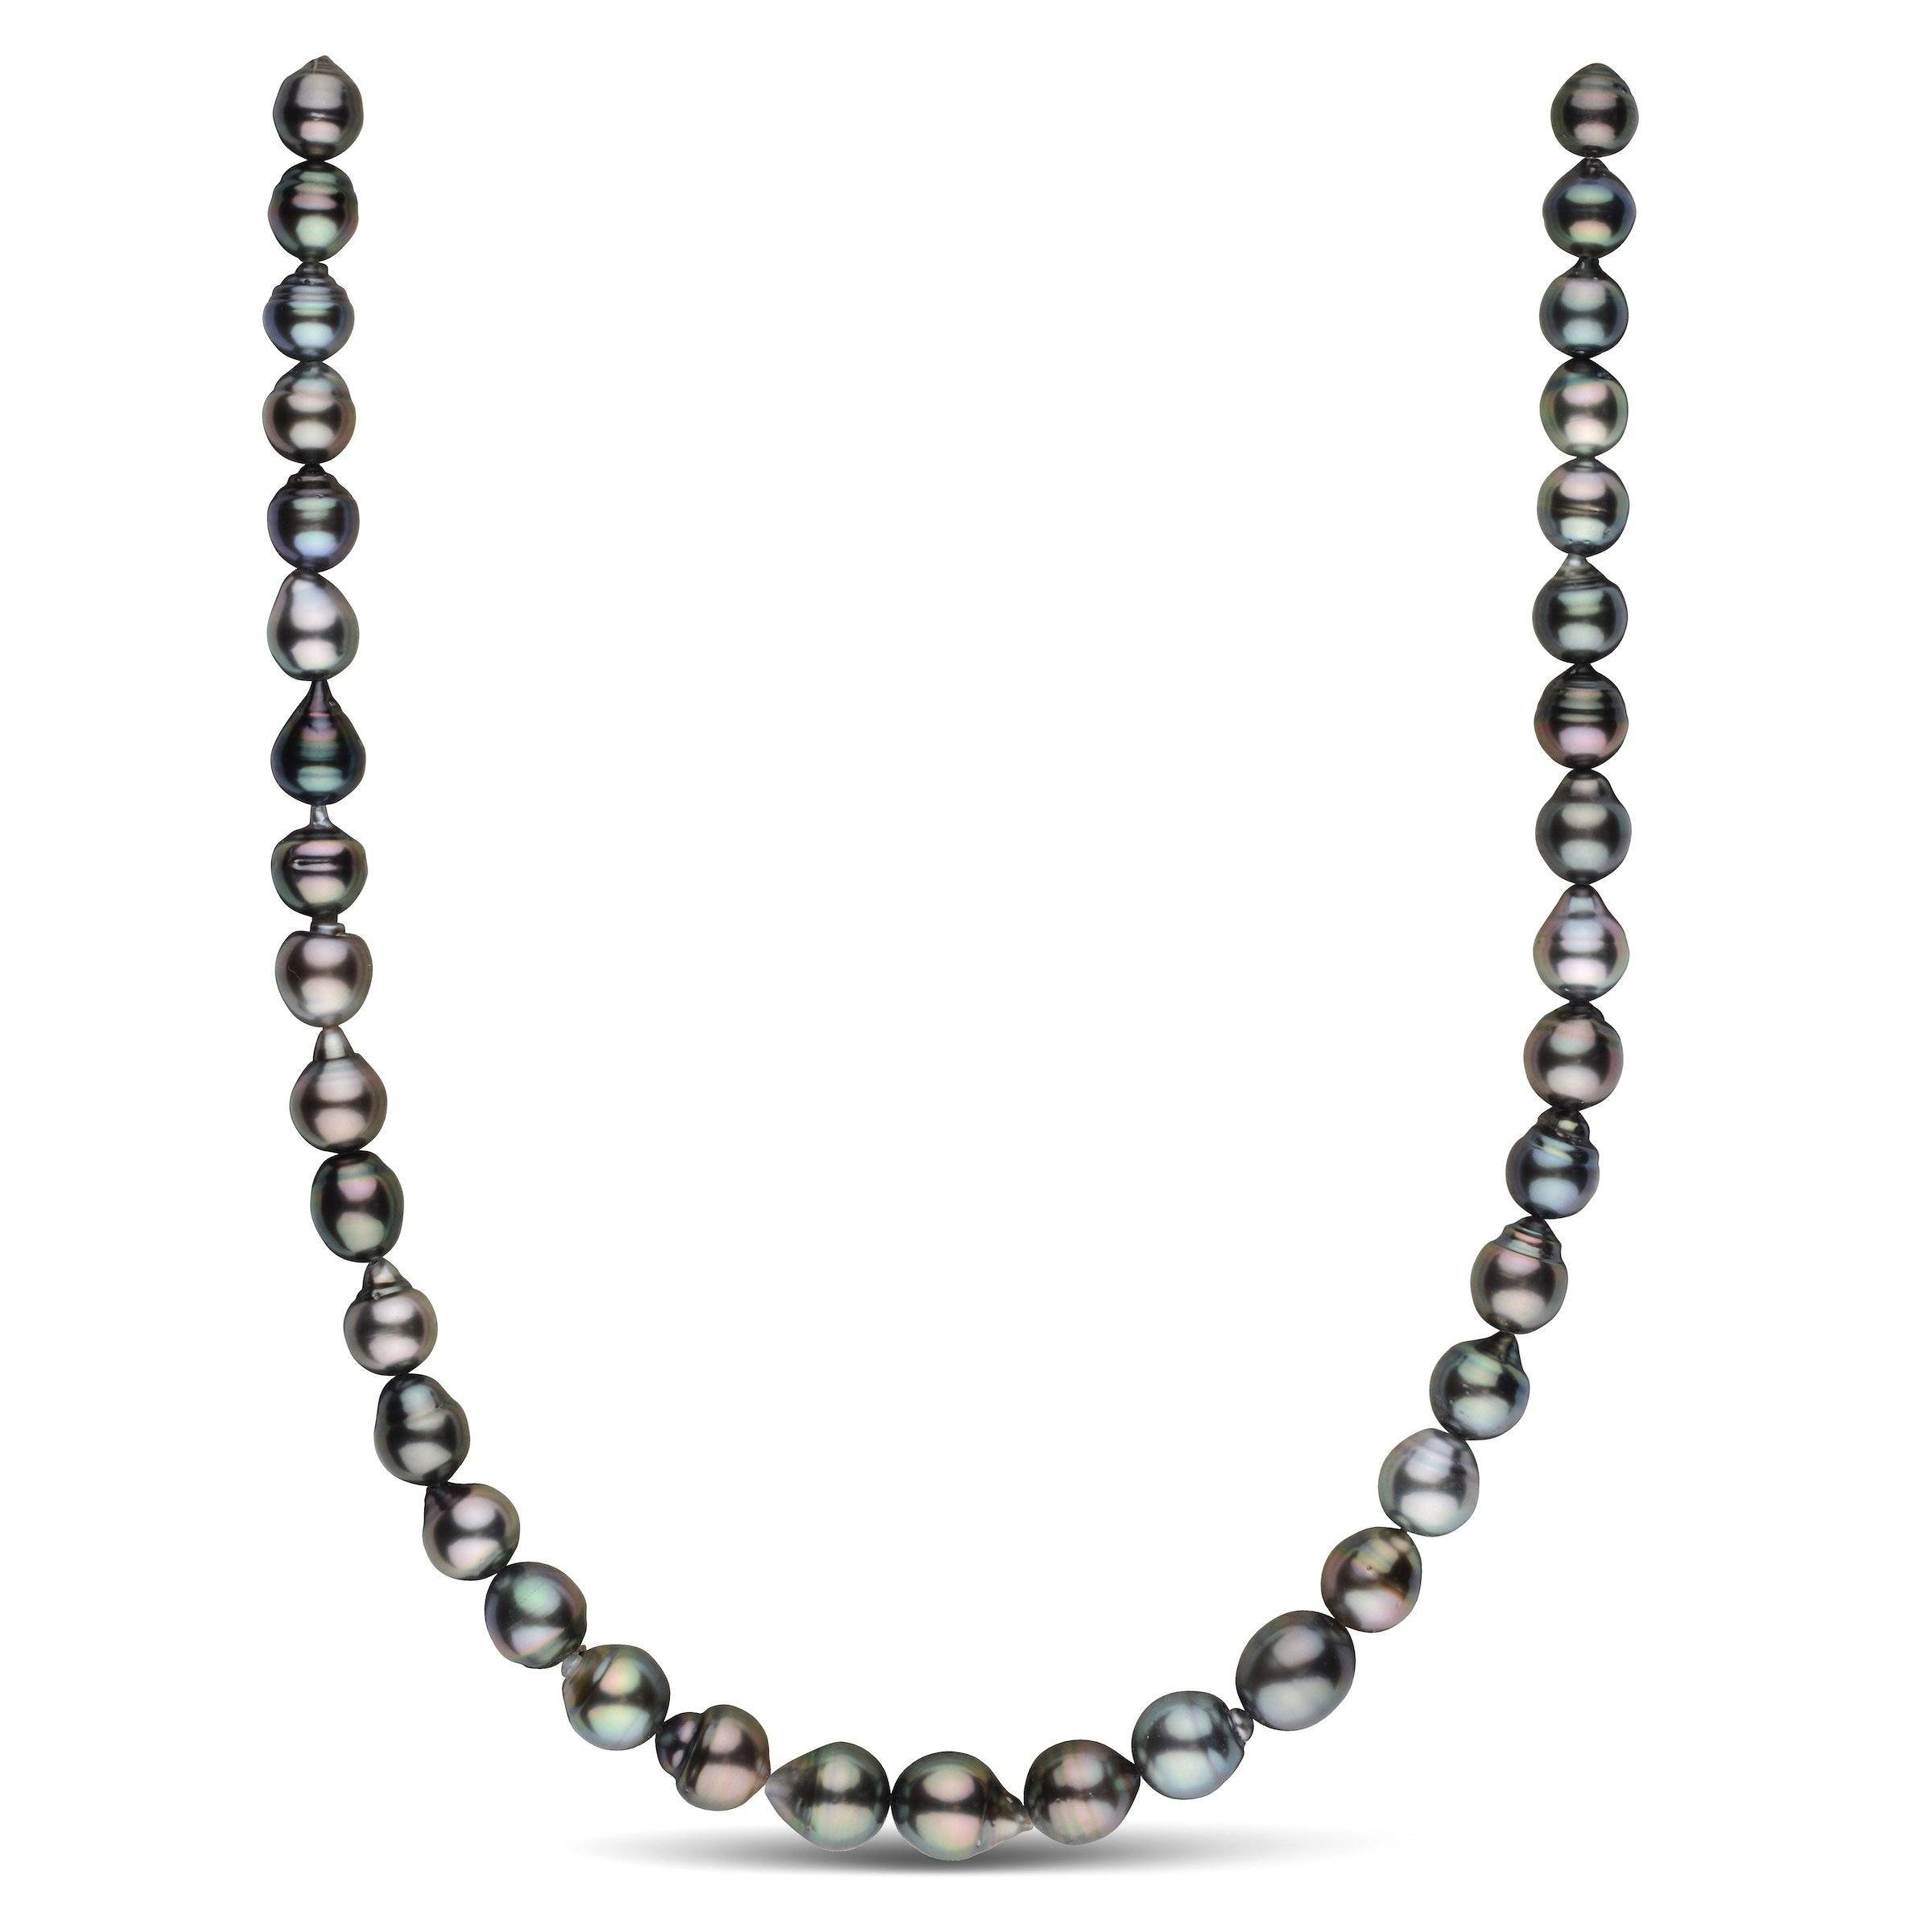 8.4-10.4 mm AAA Tahitian Baroque Pearl Necklace